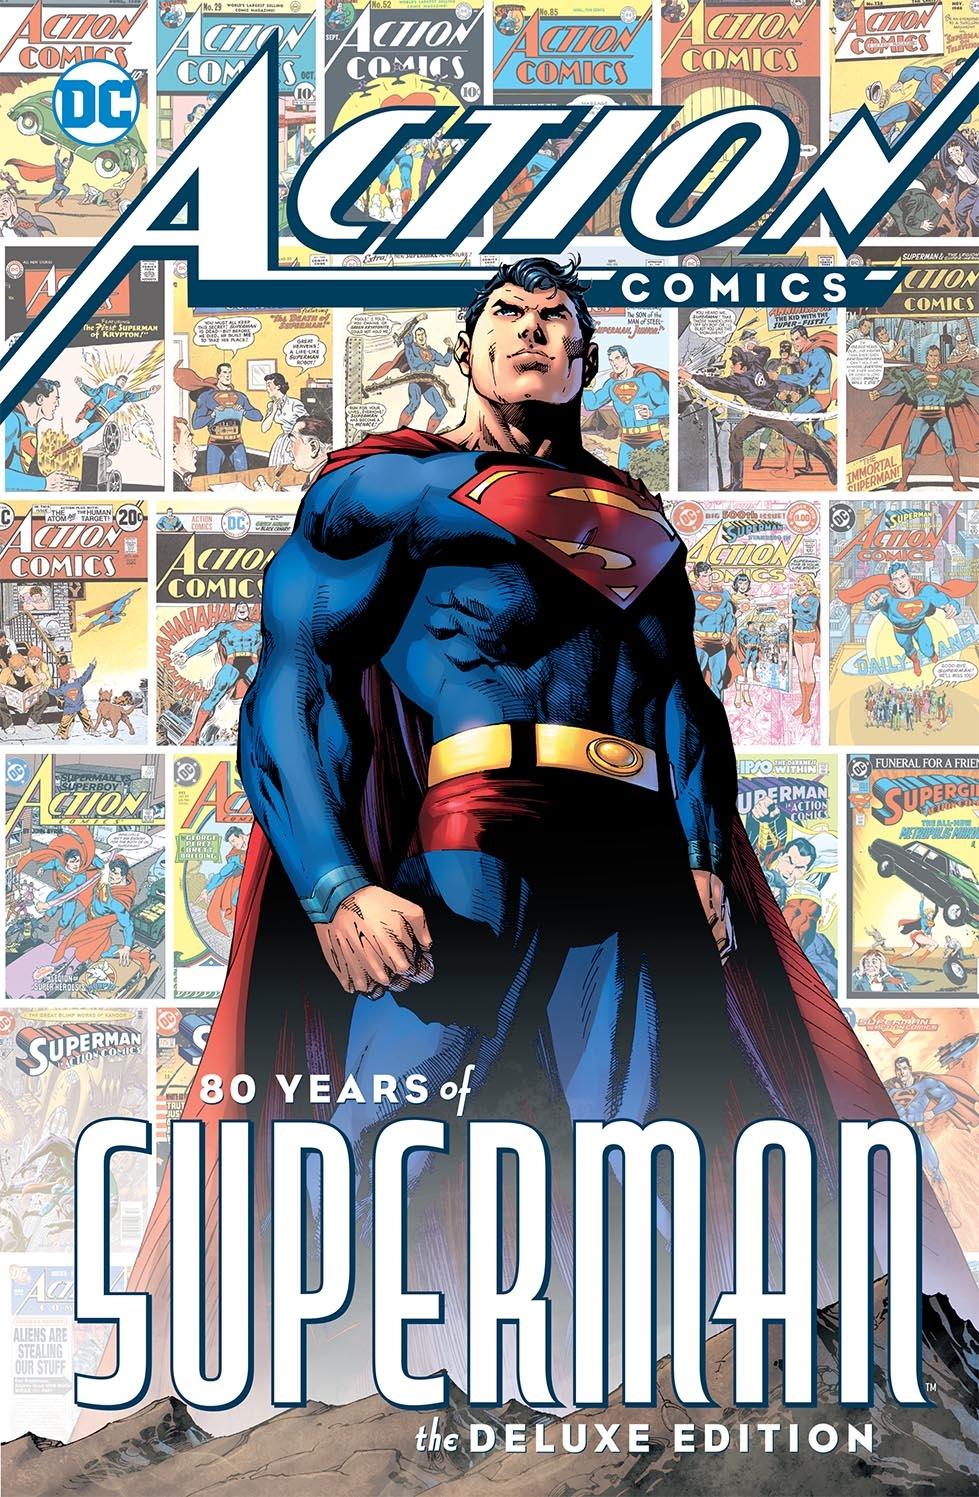 Action Comics 1000 80 years of superman HC (VO)